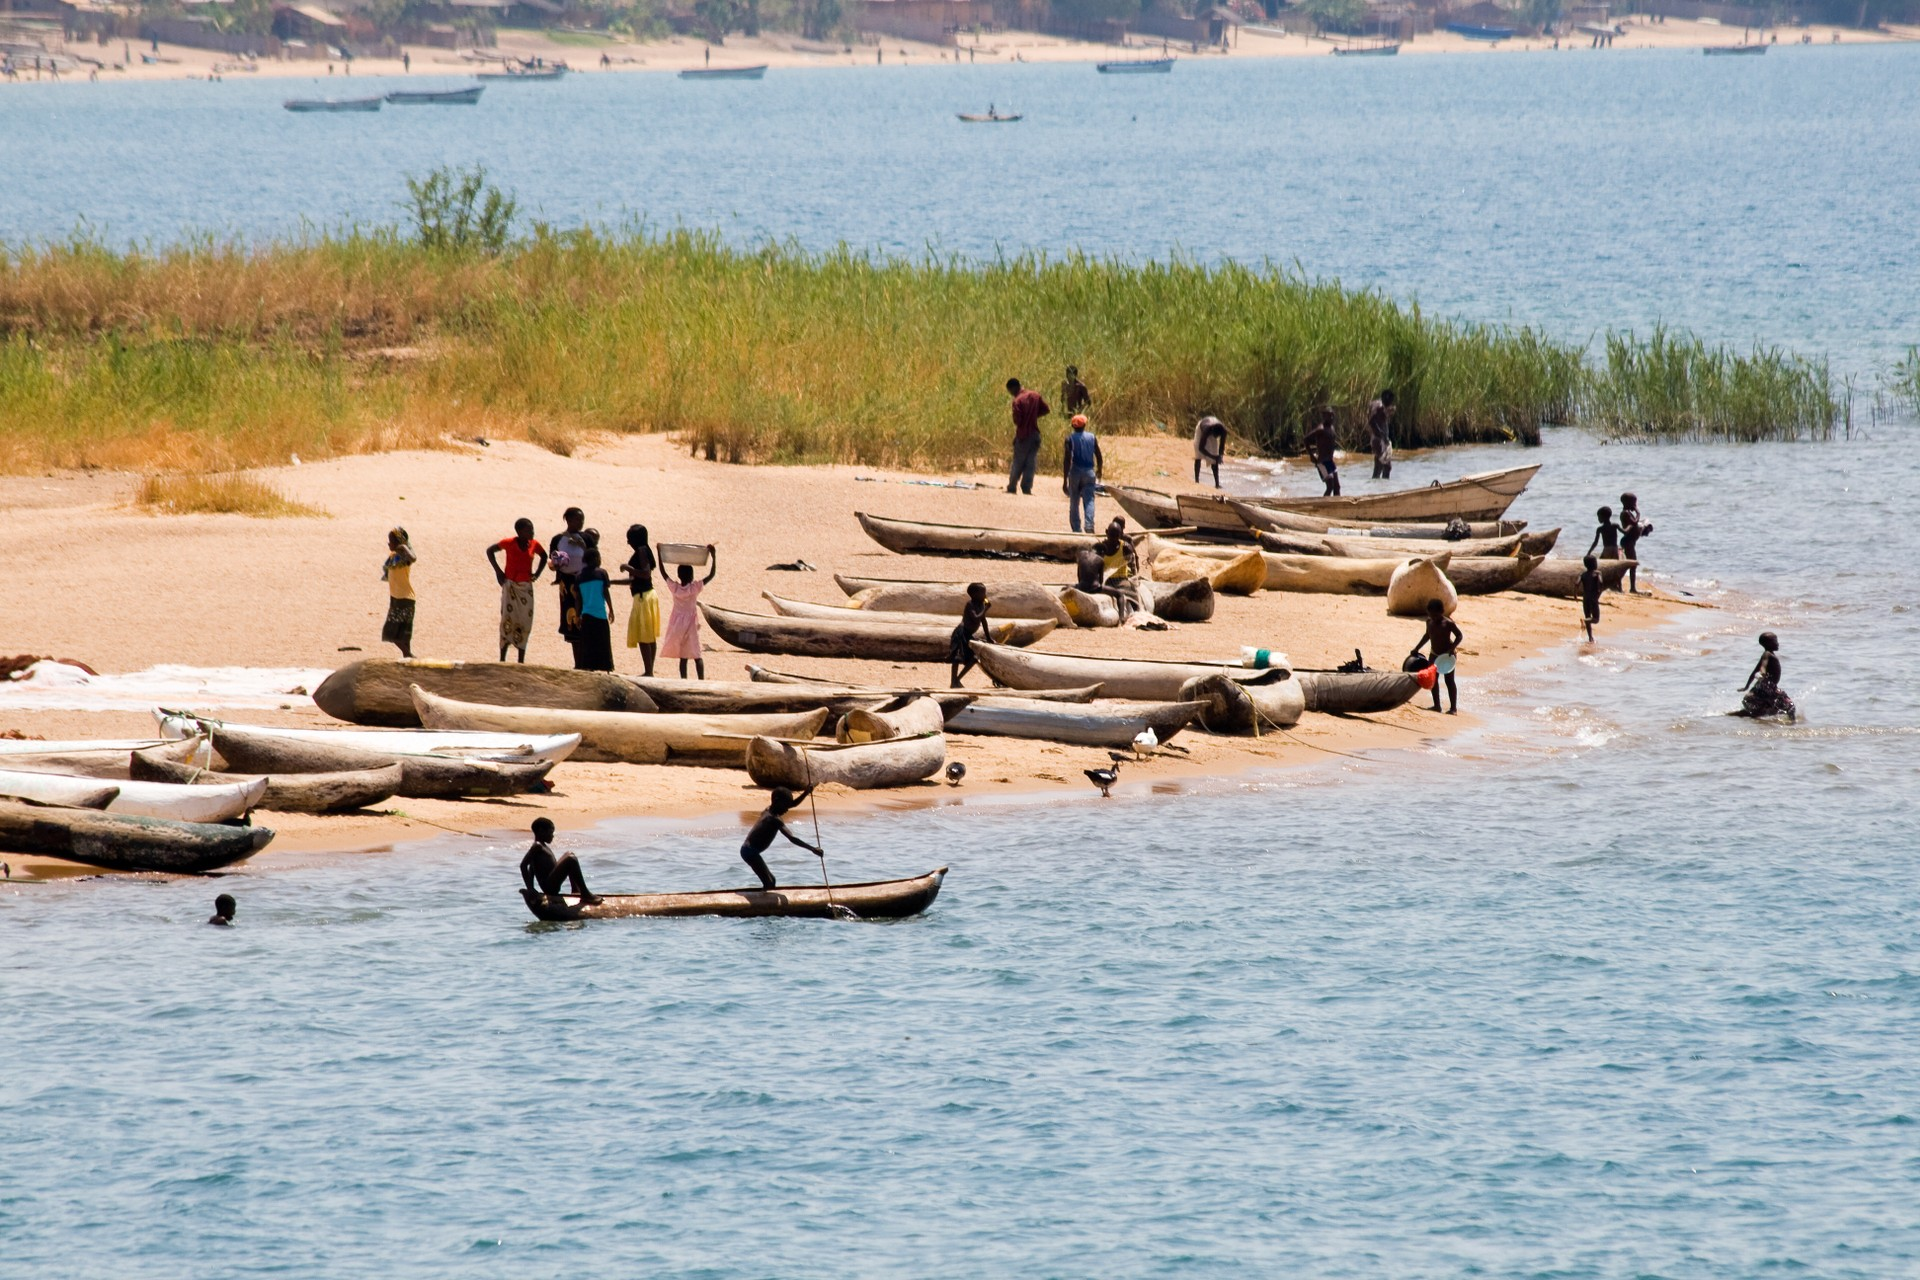 Fishing boats on Lake Malawi